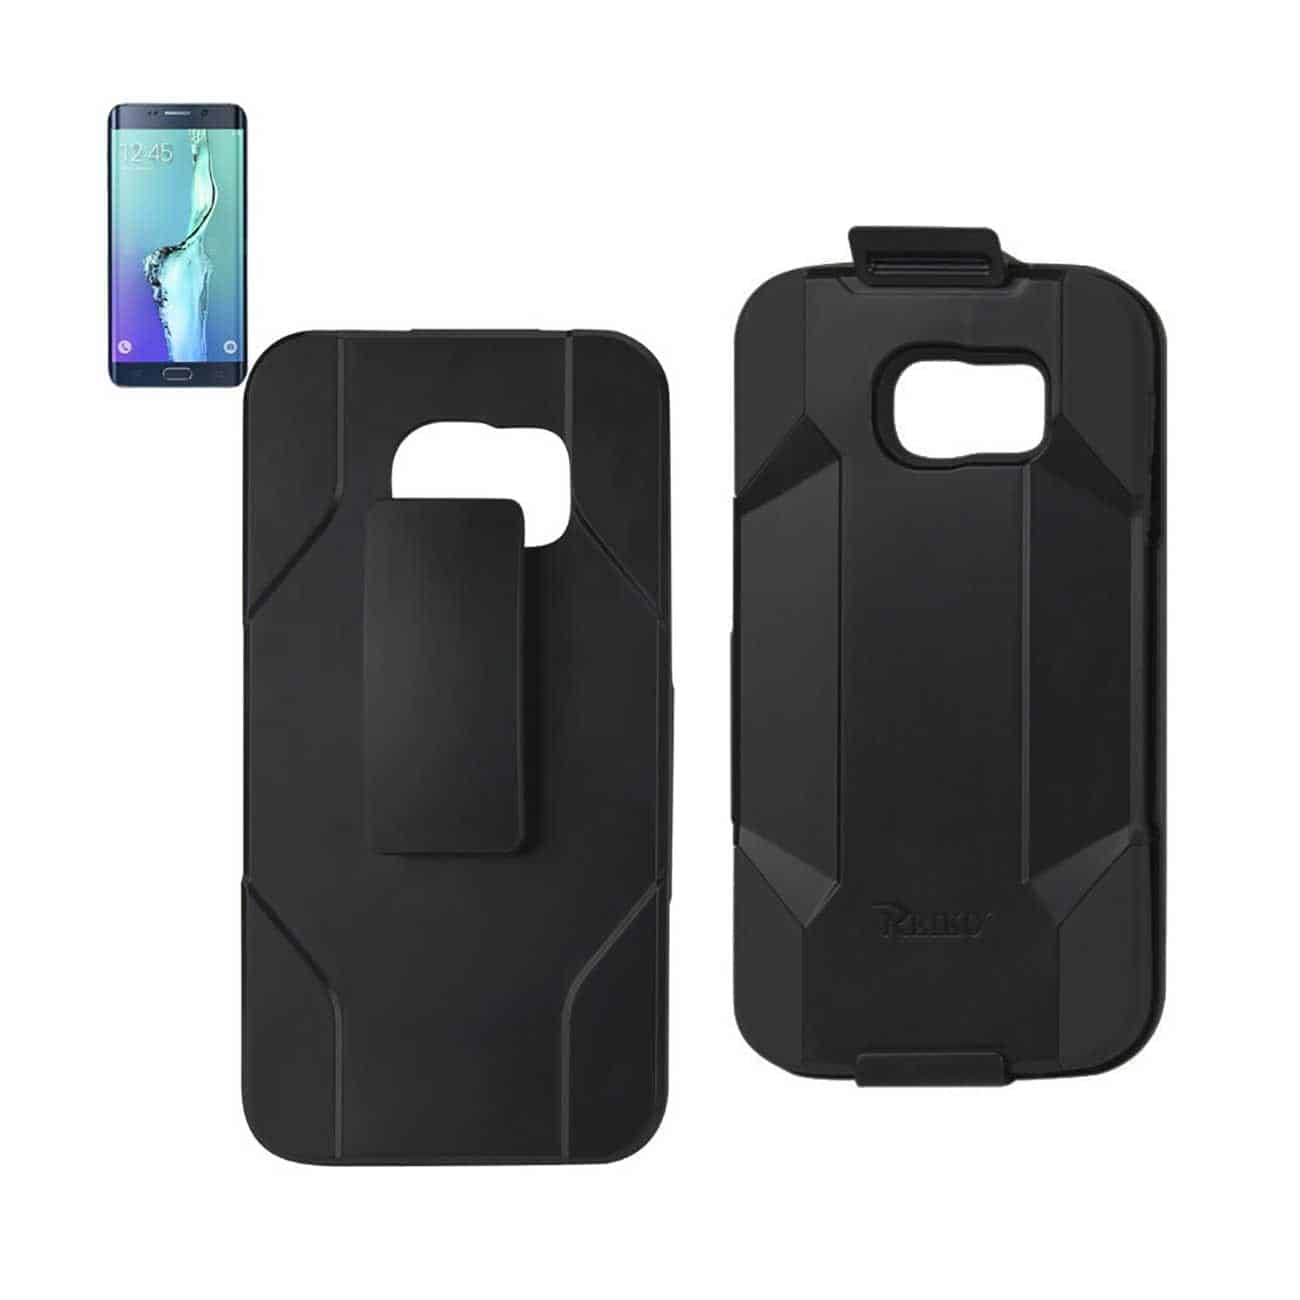 SAMSUNG GALAXY S6 EDGE PLUS HYBRID HEAVY DUTY HOLSTER COMBO CASE IN BLACK